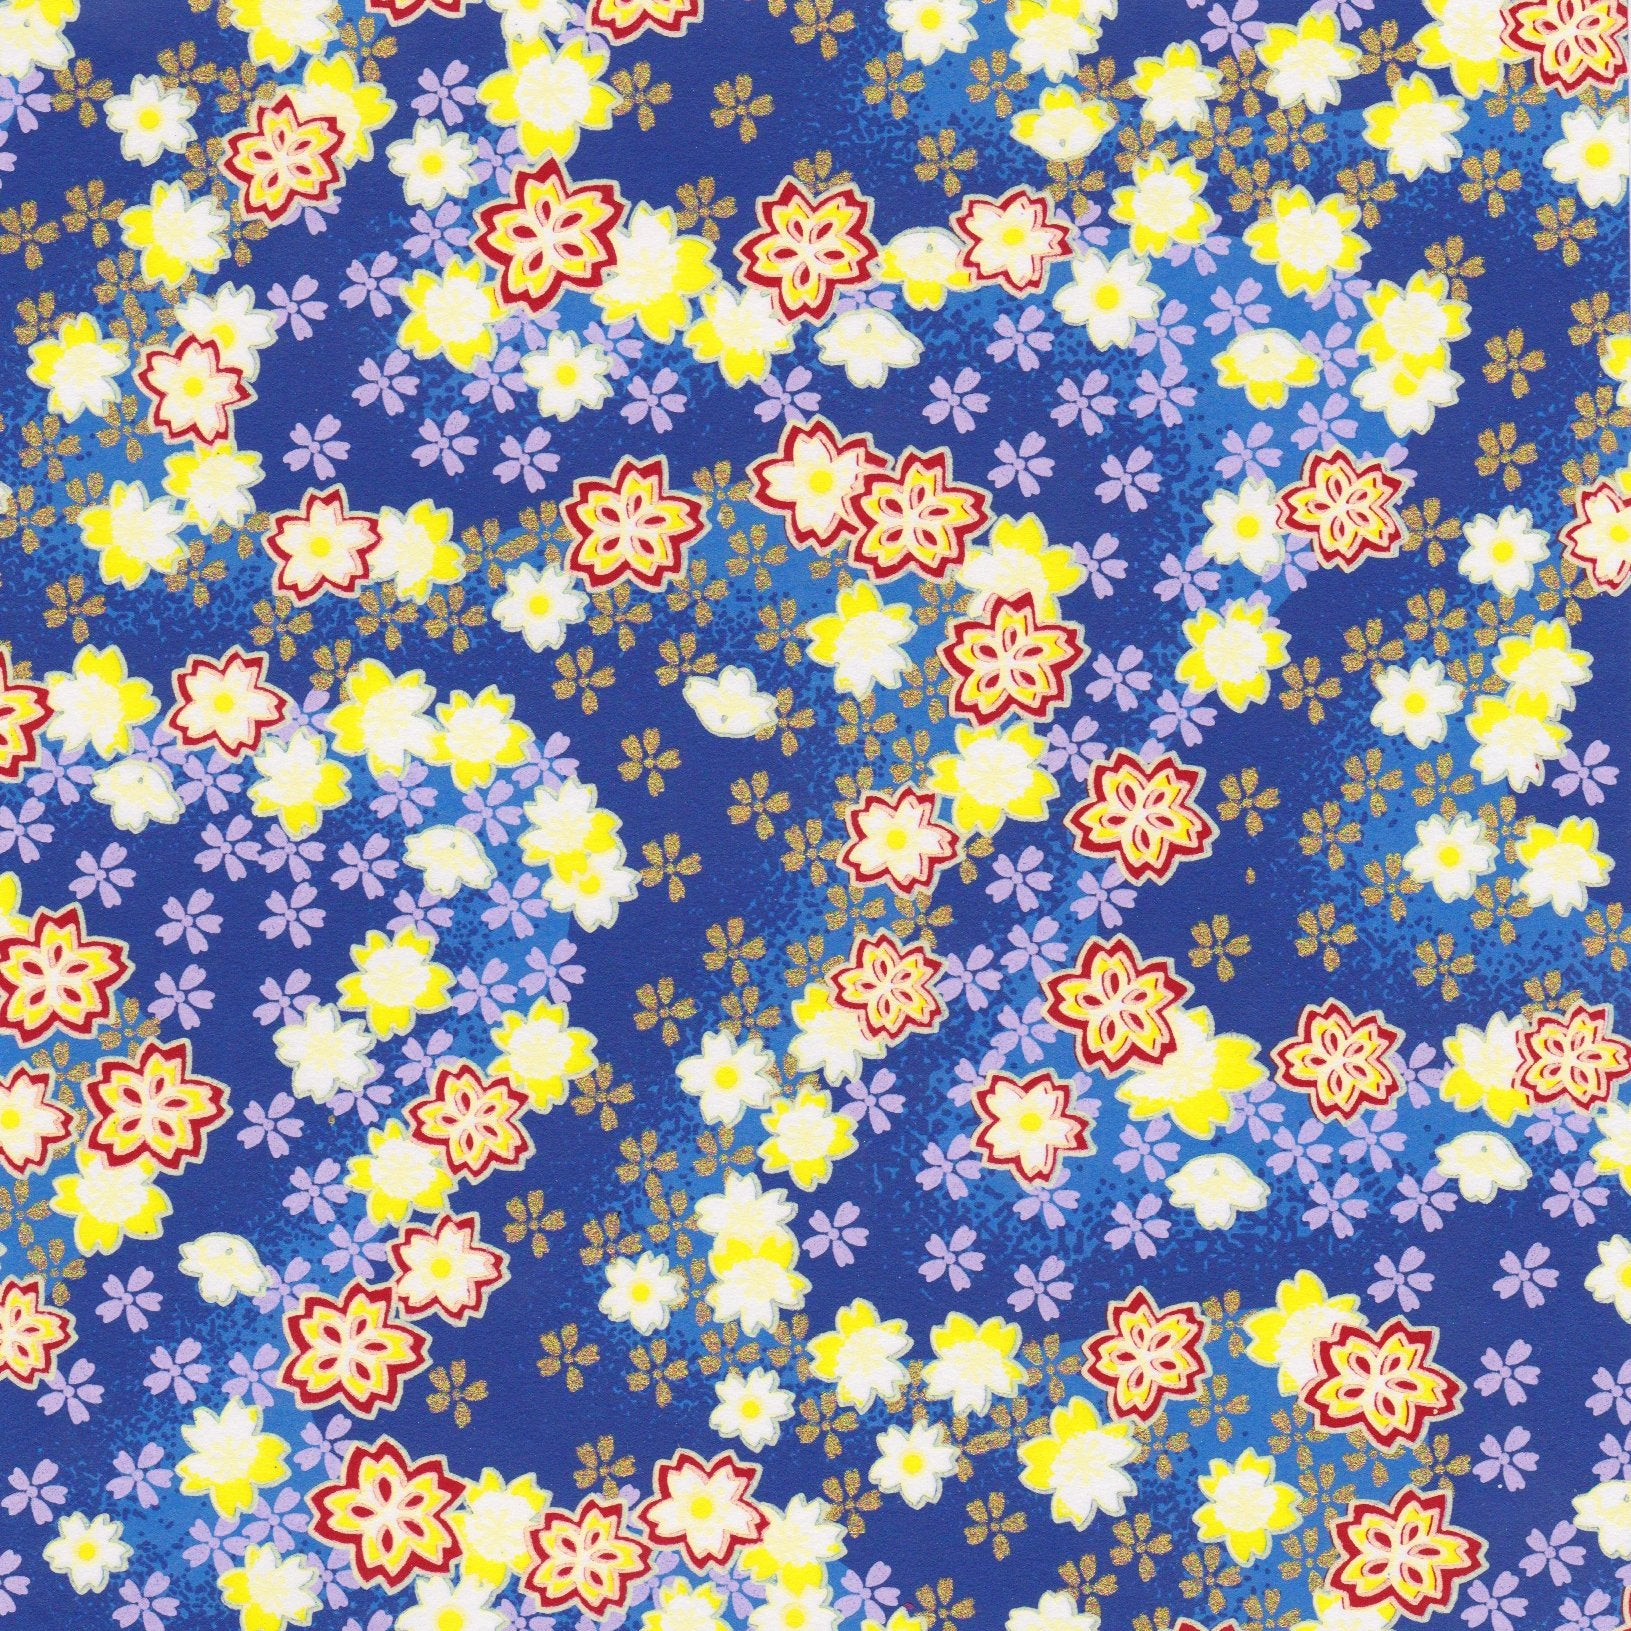 Origami Paper Cherry Blossom Patterns Its Fun to Fold! Large Papel ...   1631x1631